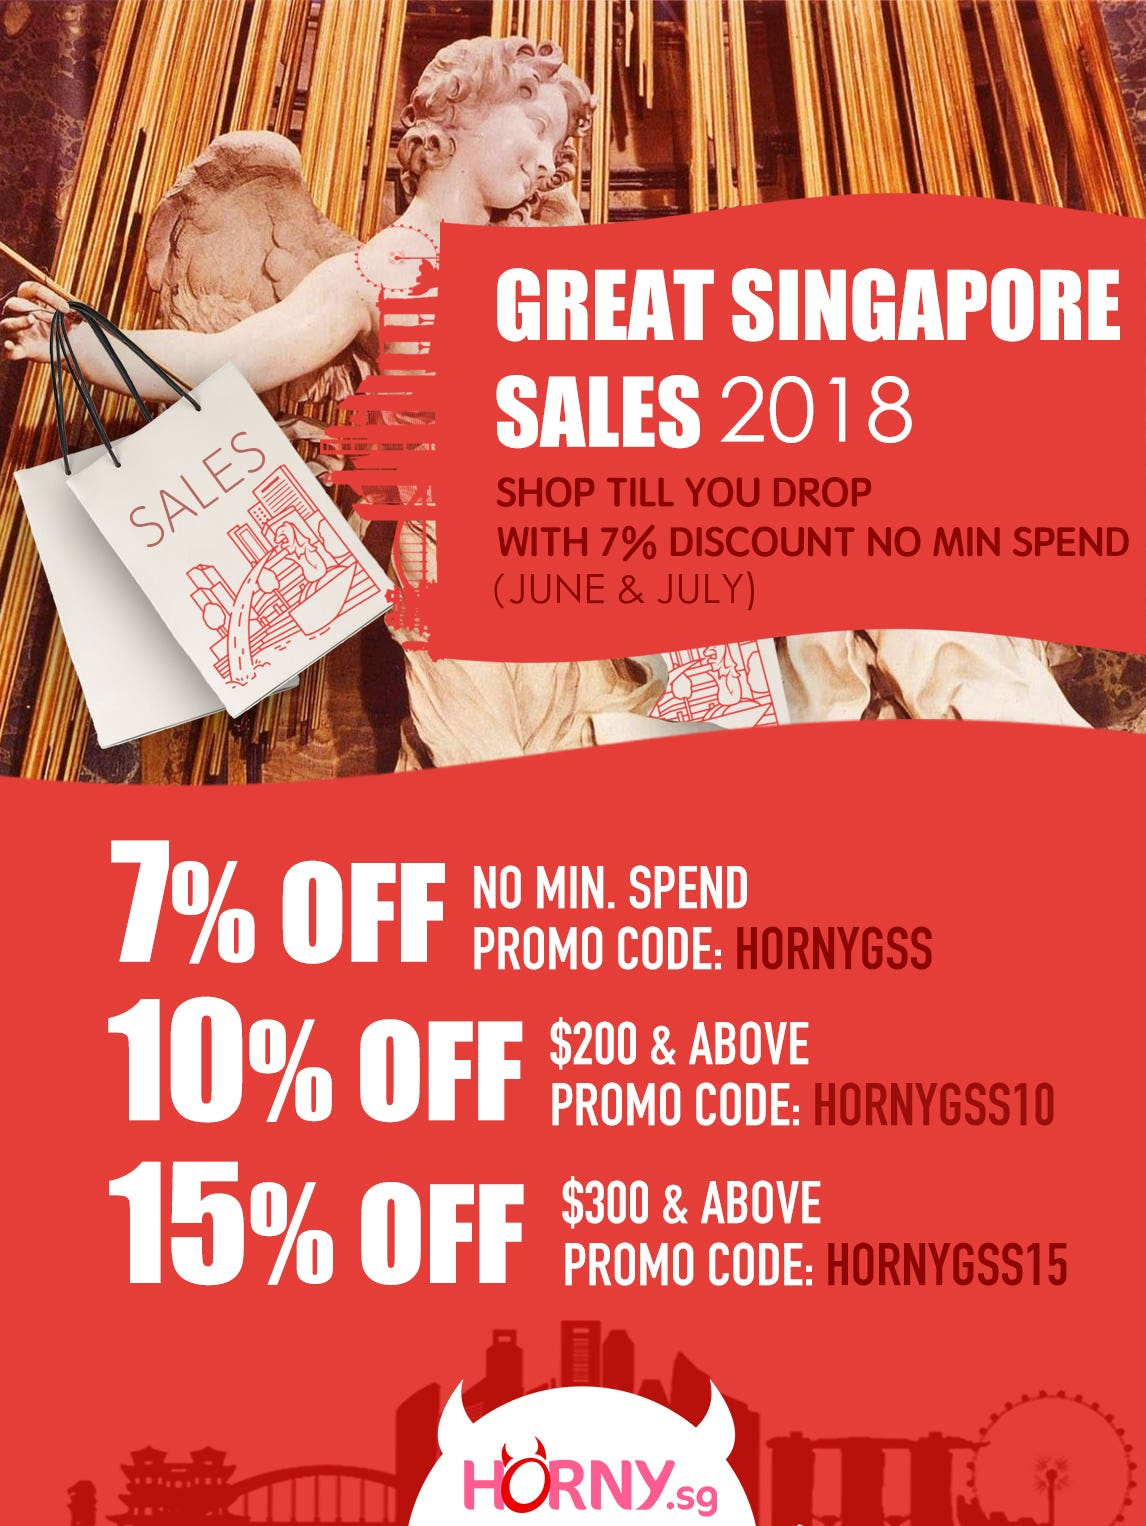 Great Singapore Sales 2018